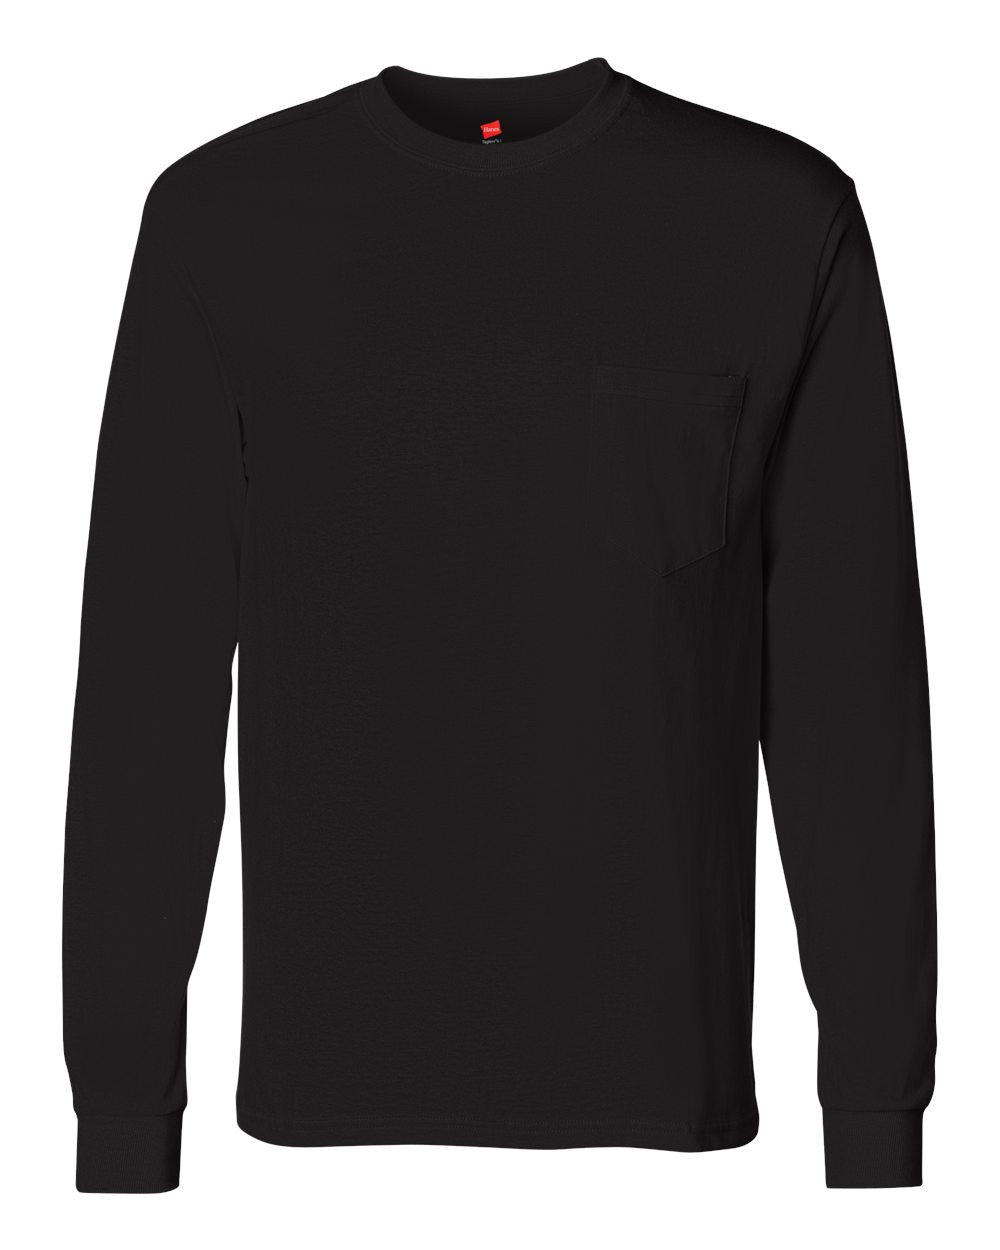 3 pack Pocket Long Sleeve T-shirts by Hanes - Discountedrack.com